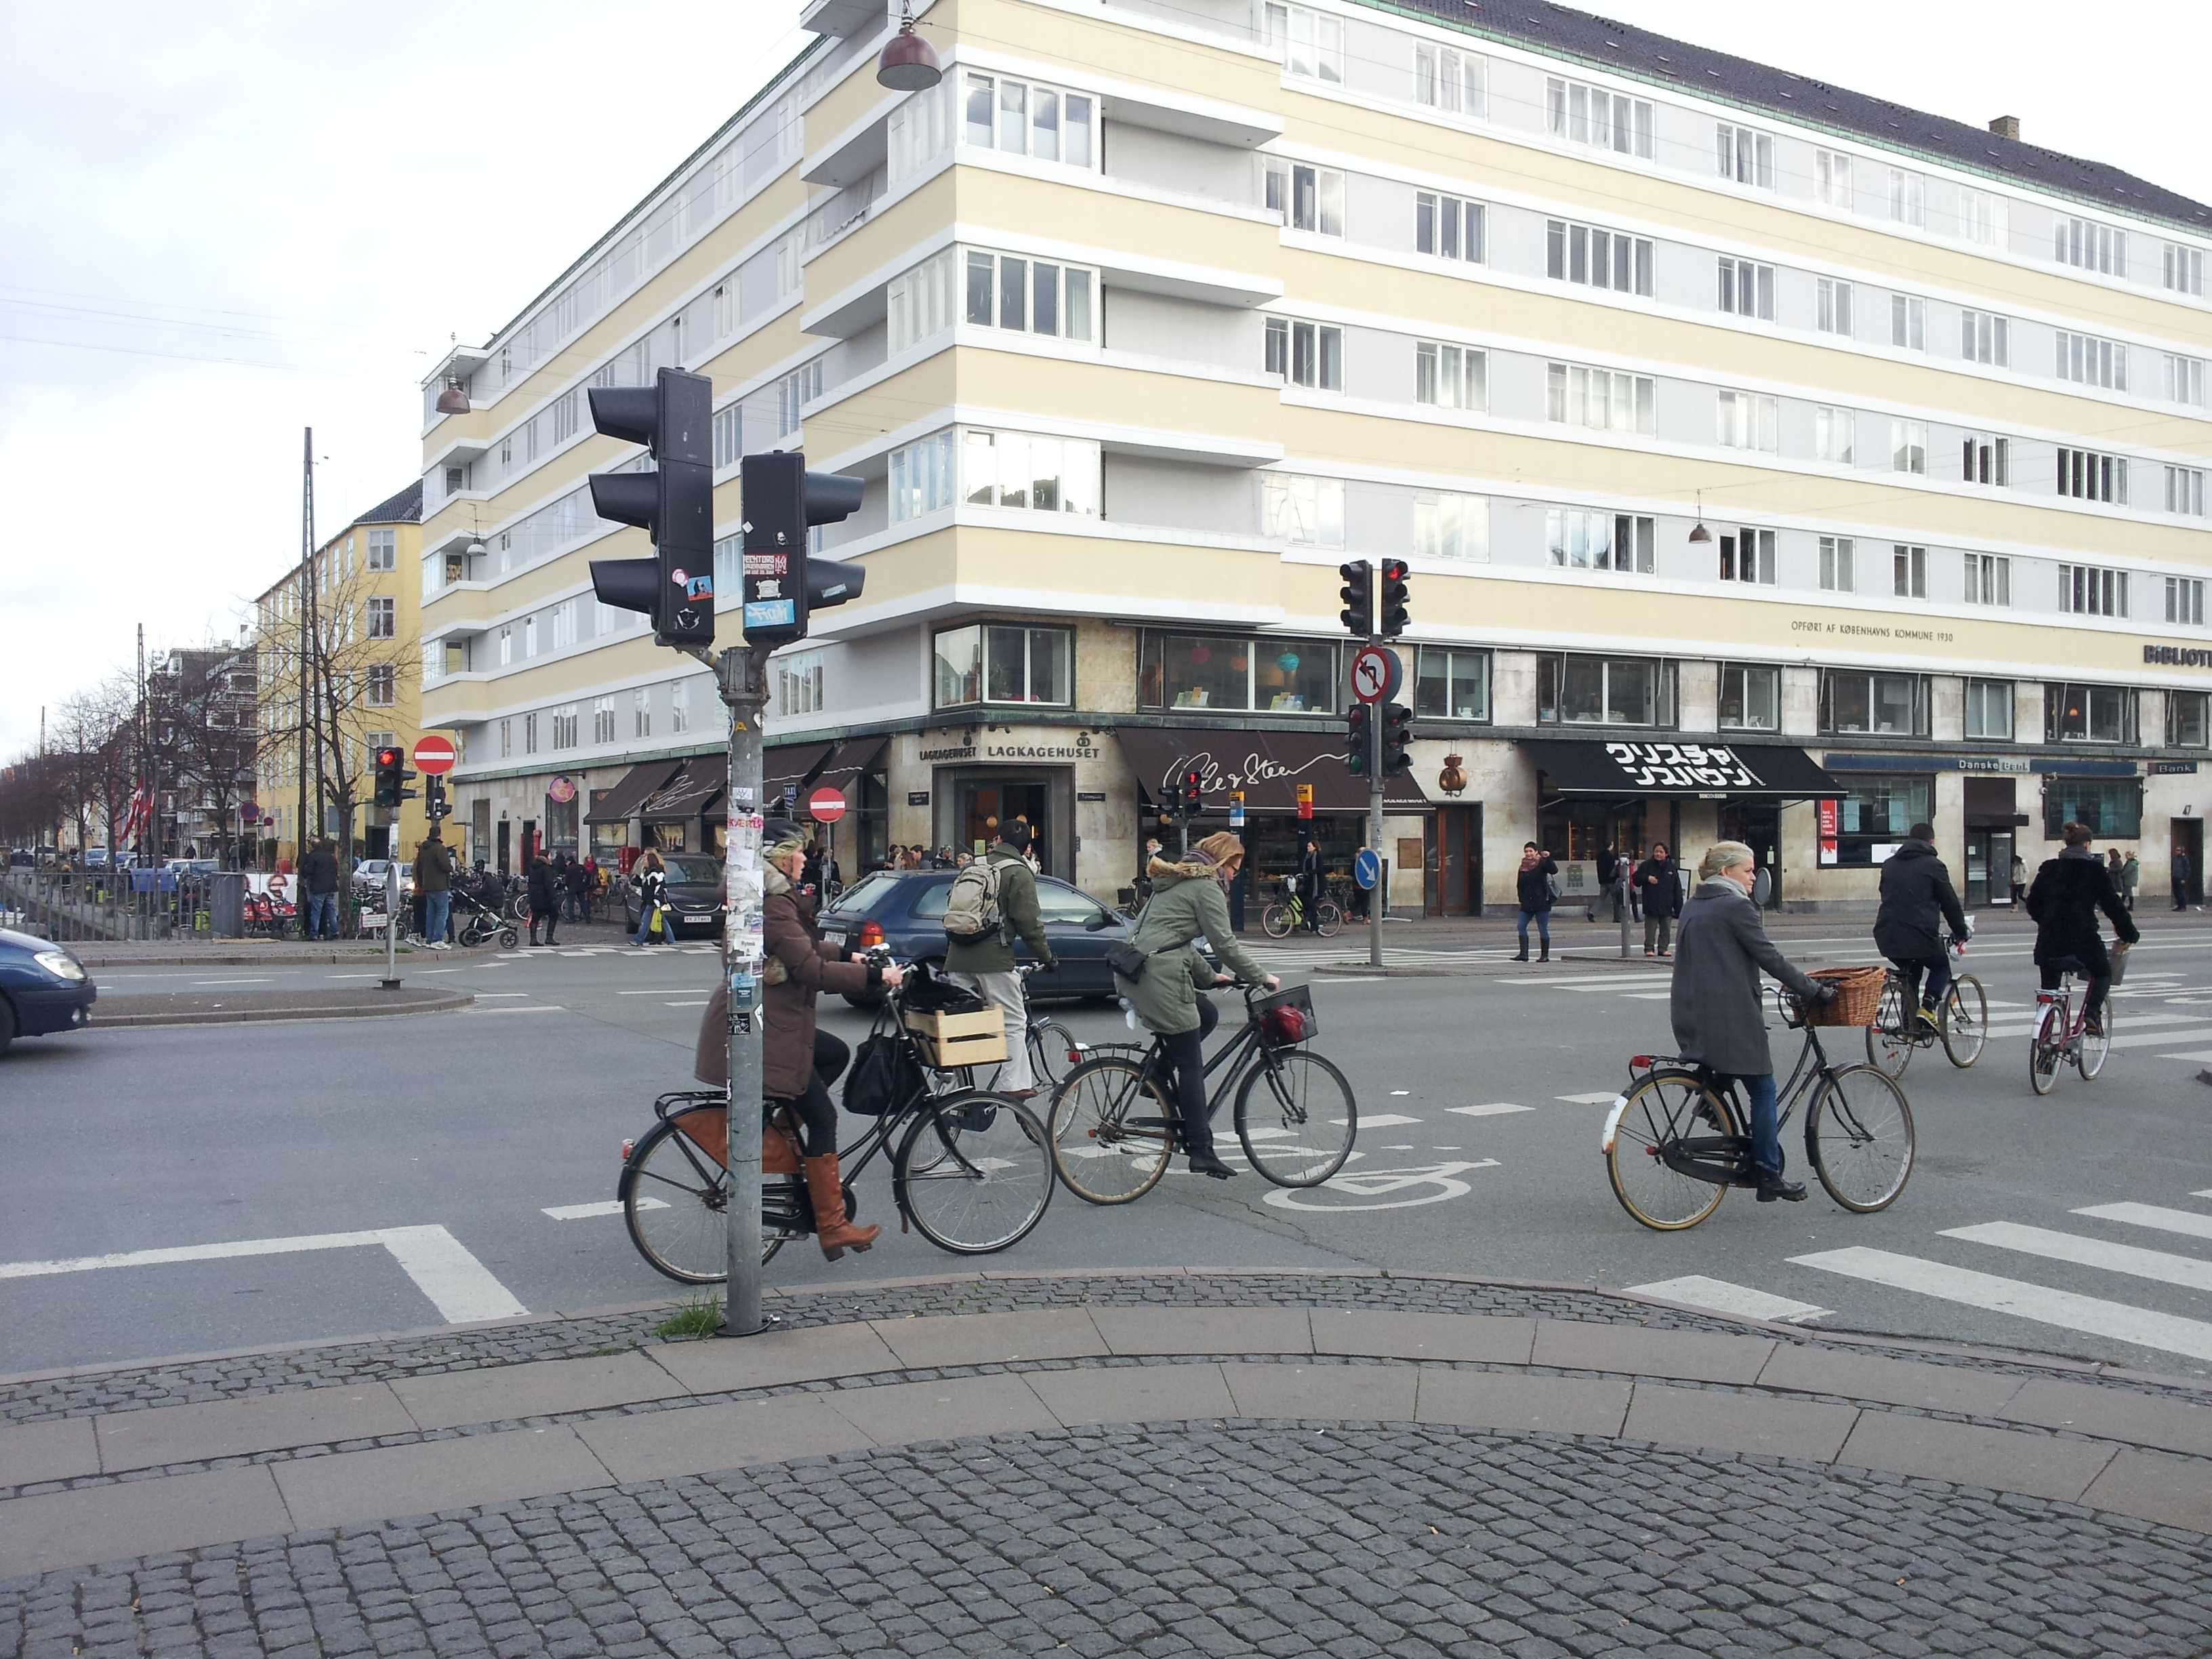 Cyclists in Copenhagen enjoy the vitality of the city, riding in designated bike lanes that benefit from head-starts at traffic signals and higher grades than the rest of the street. Photo by Joe Huber '15.